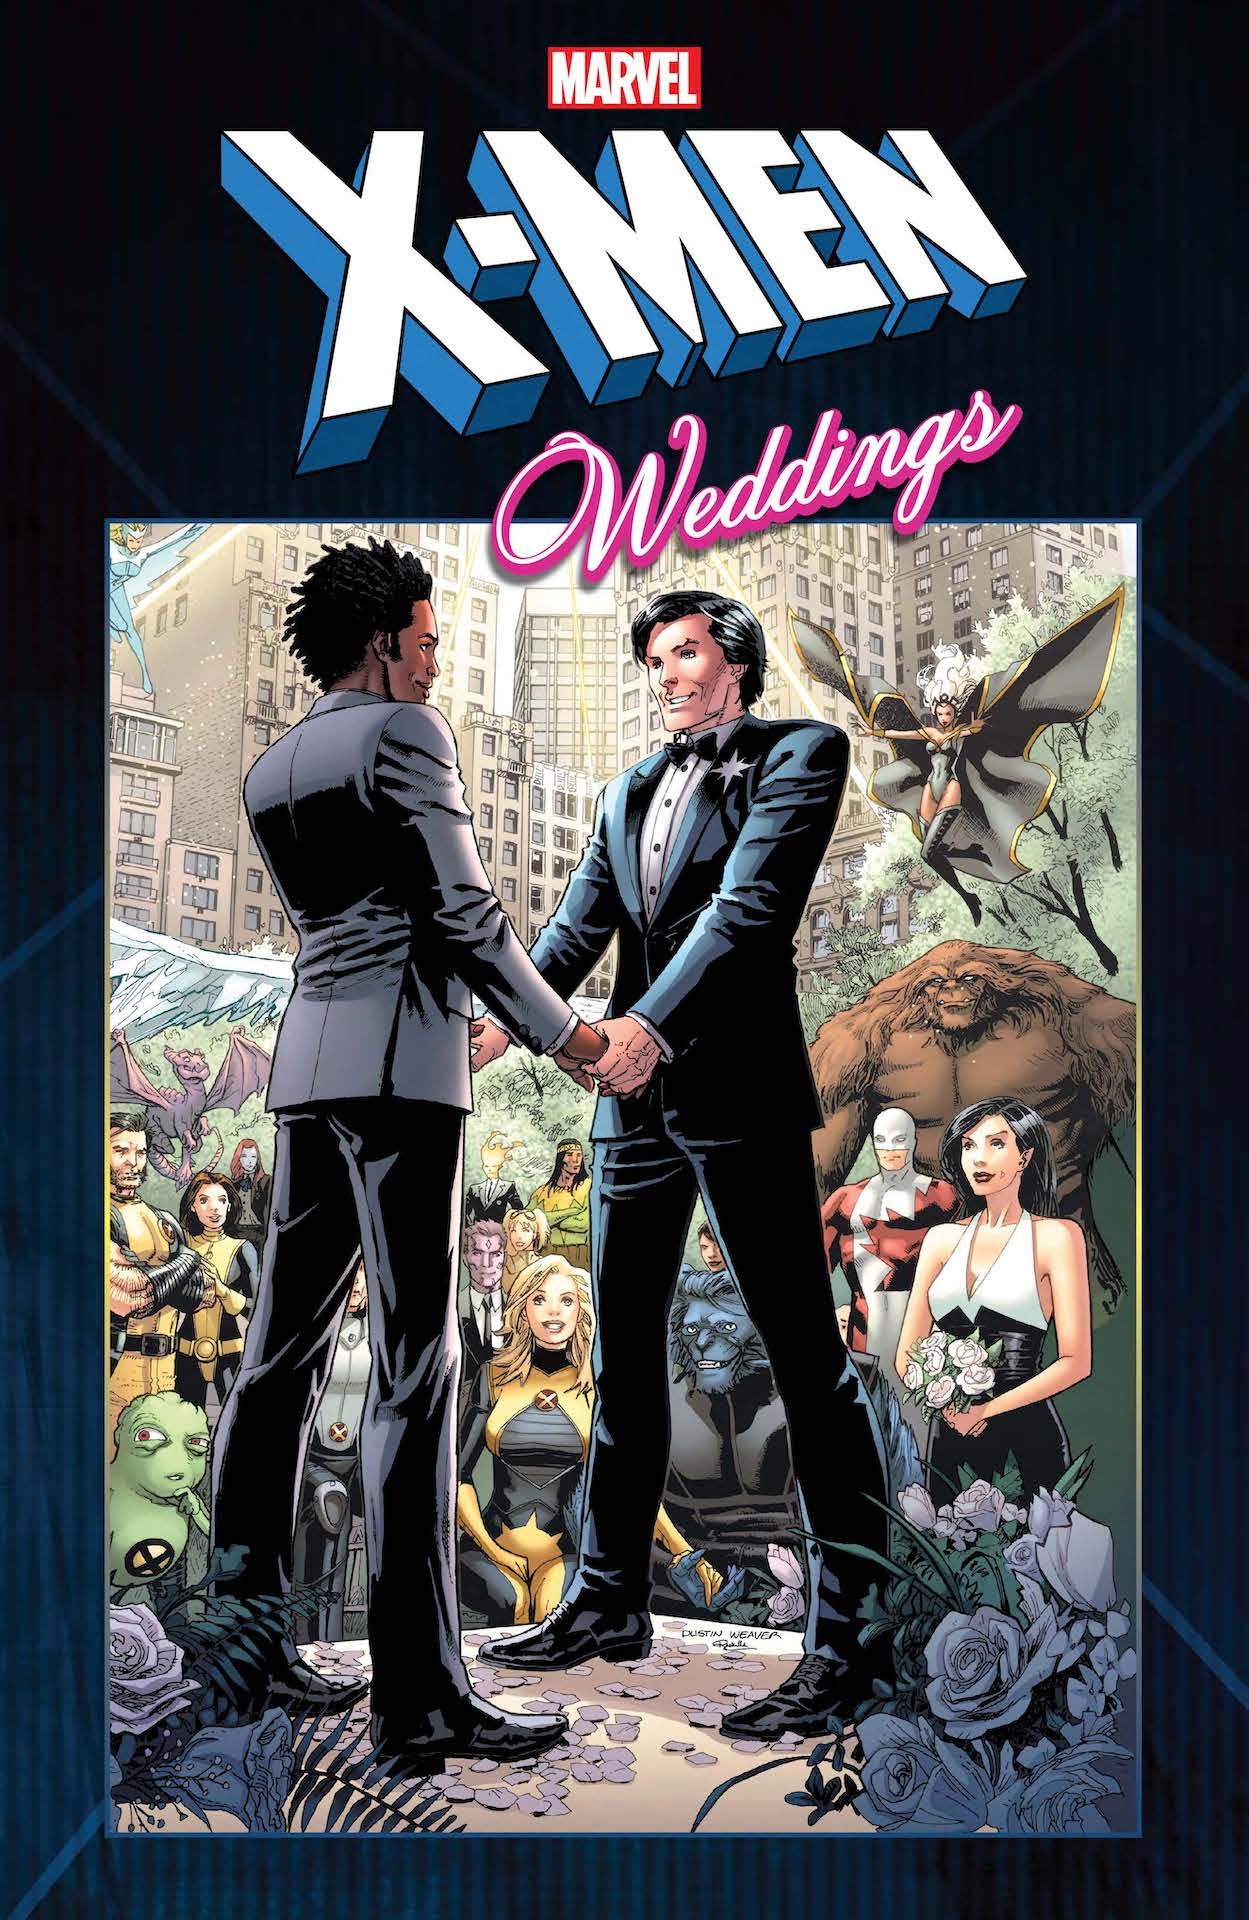 Marvel Comics app offers digital exclusive Hidden Gem comics and collections including X-Men weddings and more